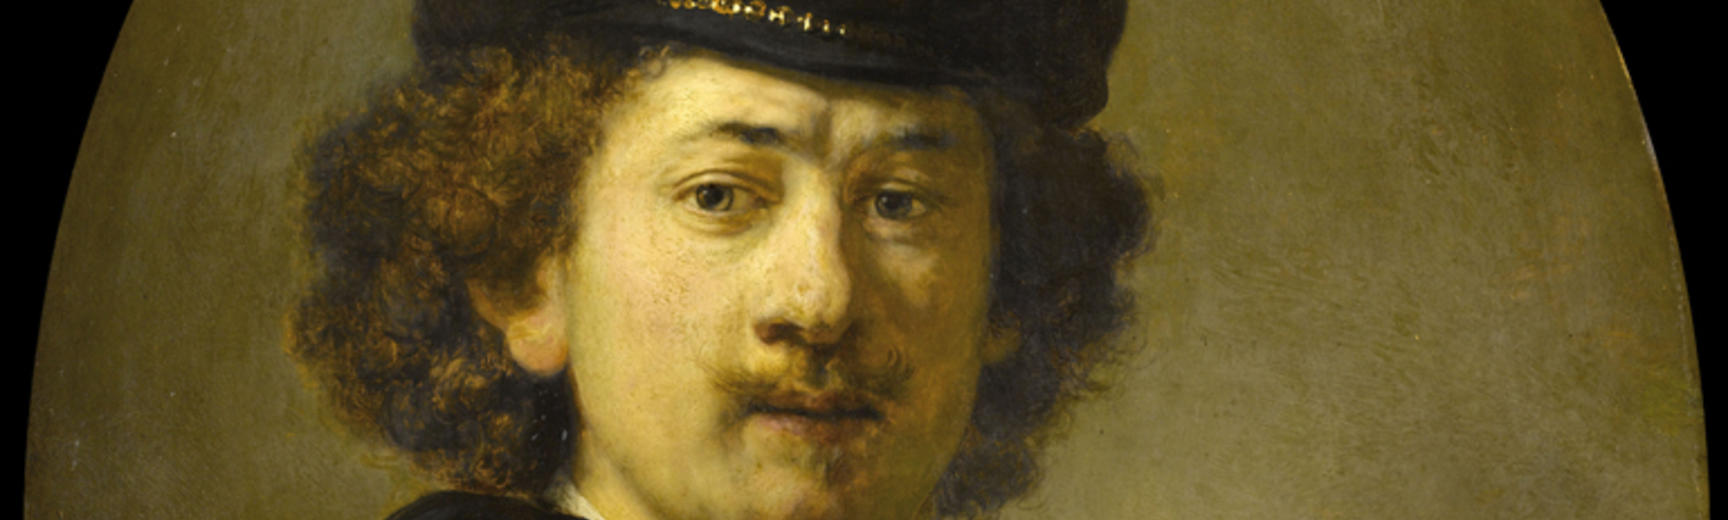 2020 Young Rembrandt Exhibition – Rembrandt, Self-Portrait with Beret and Golden Chain, 1633 © Musée du Louvre, Paris